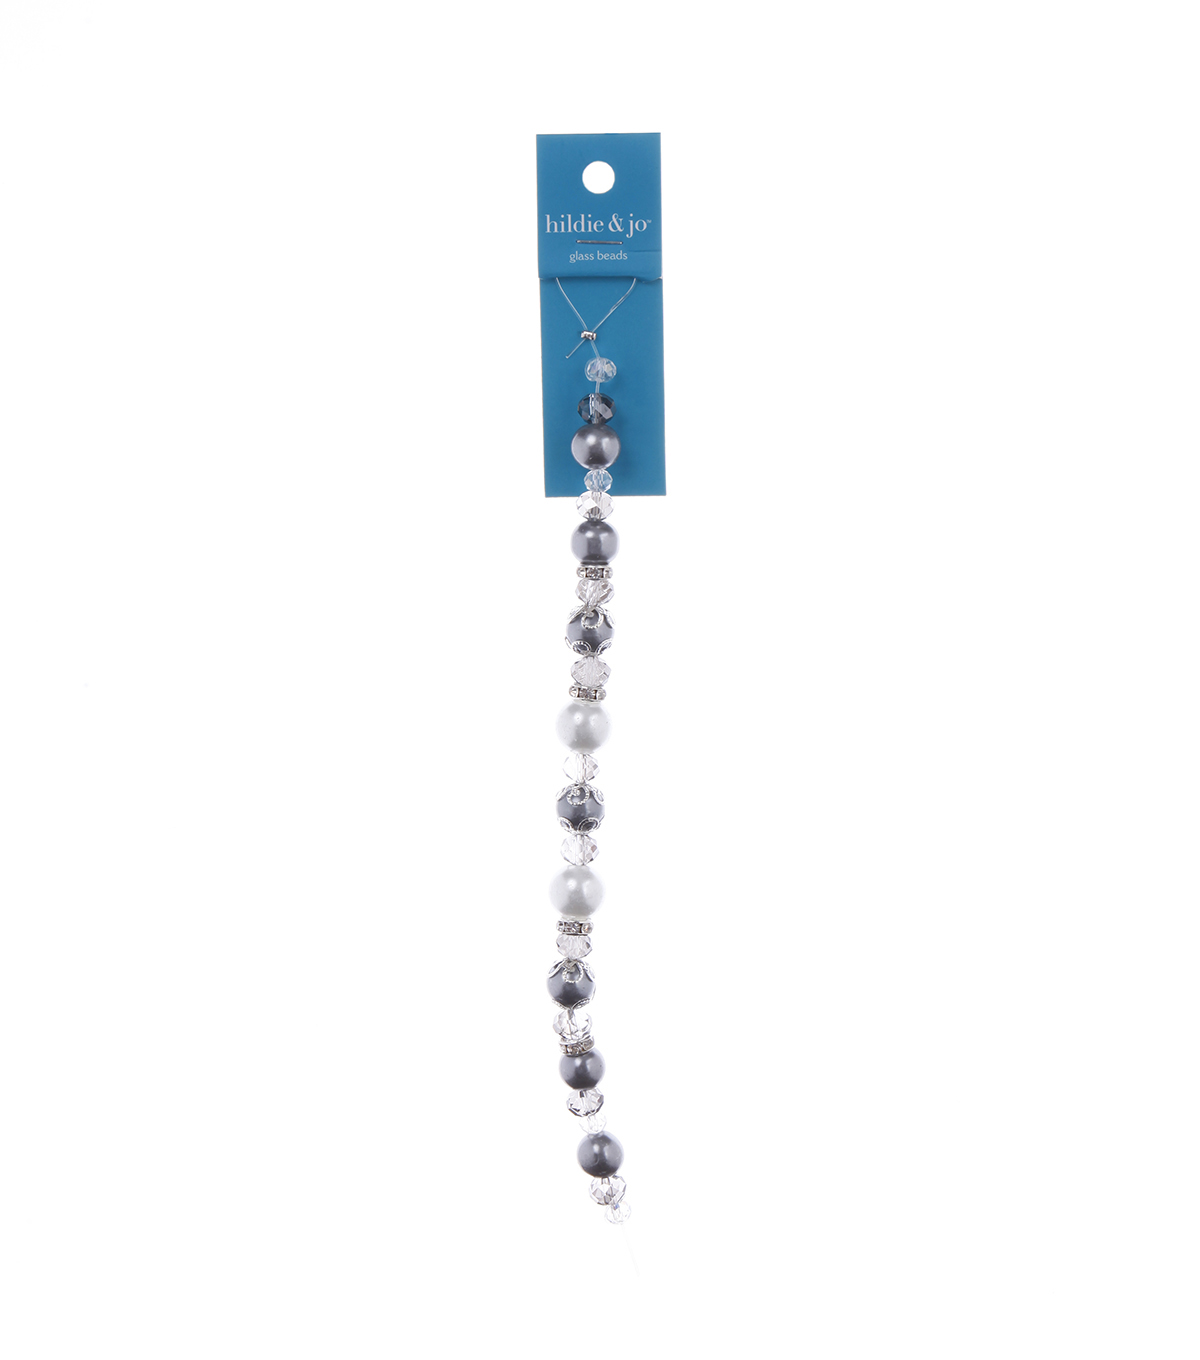 Advantus/Sulyn 7 in Socialite Parlor Bead Strand, Grey Snow